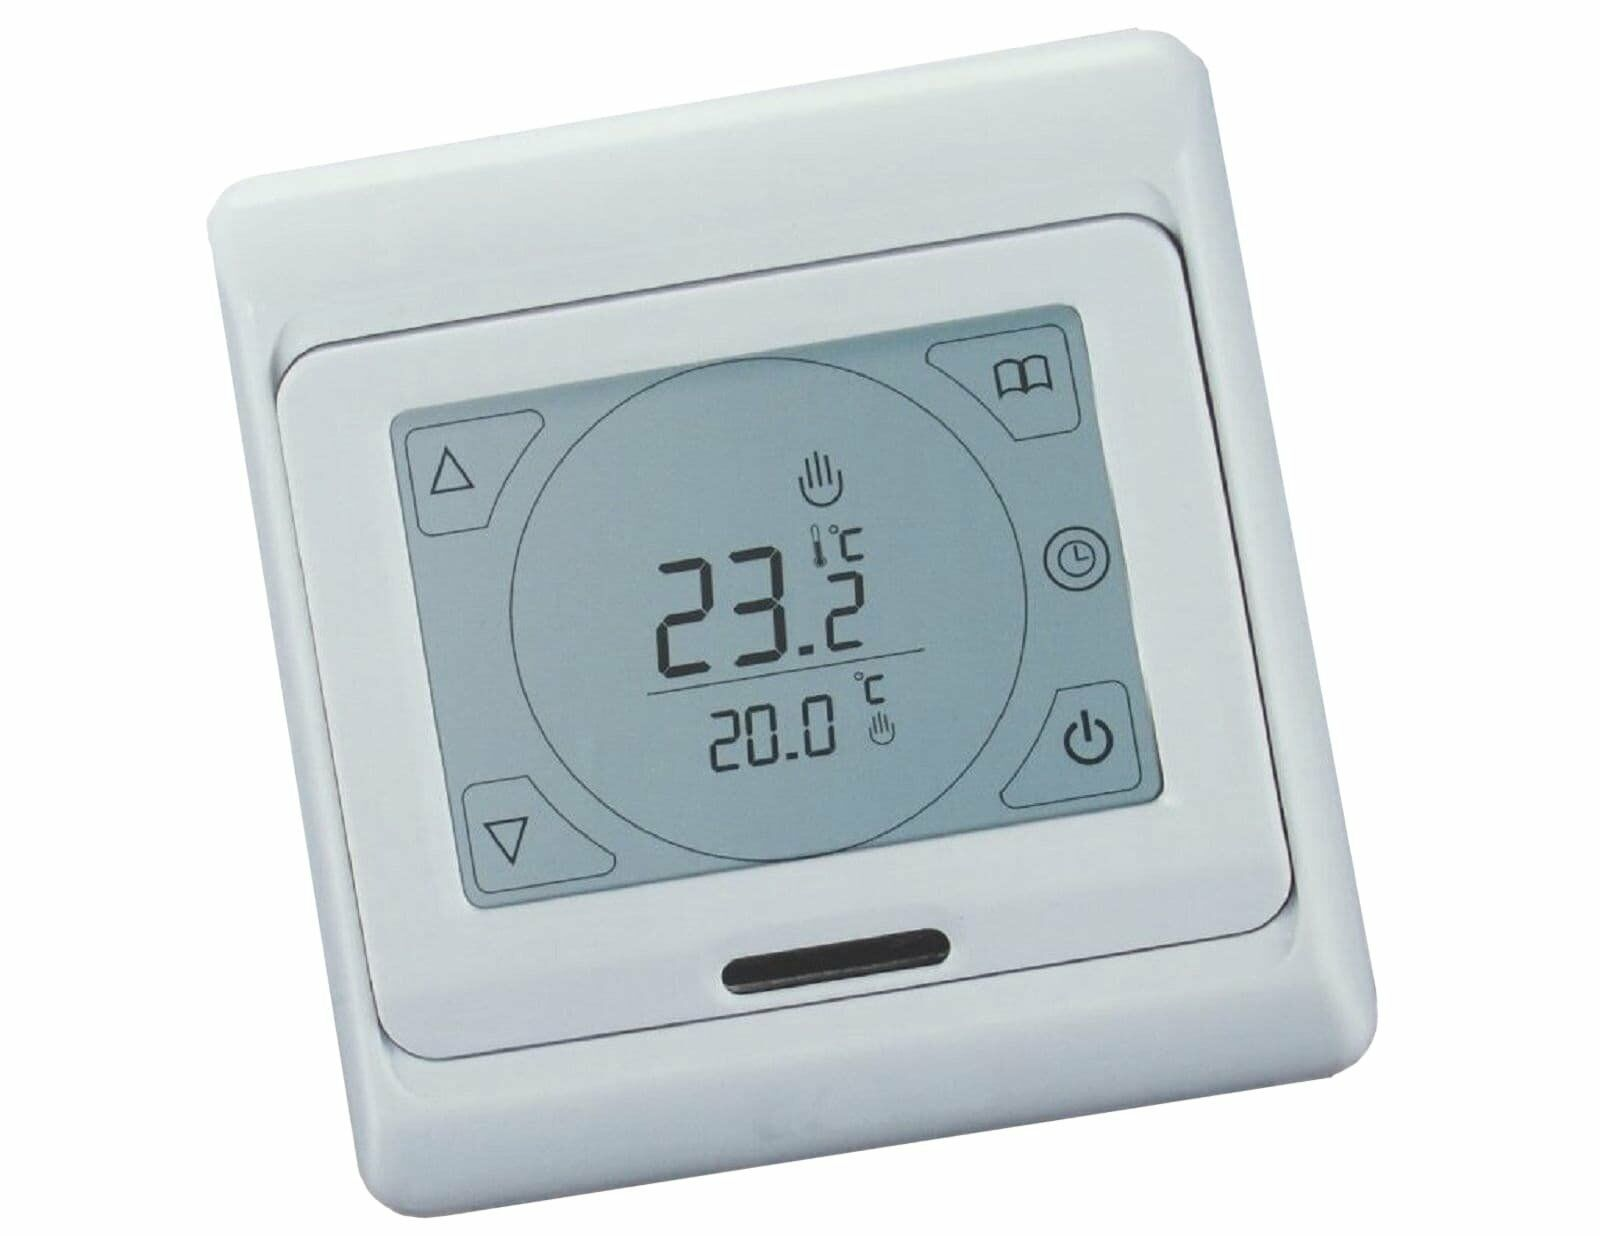 digital raumthermostat touchscreen fu bodenheizung b695. Black Bedroom Furniture Sets. Home Design Ideas